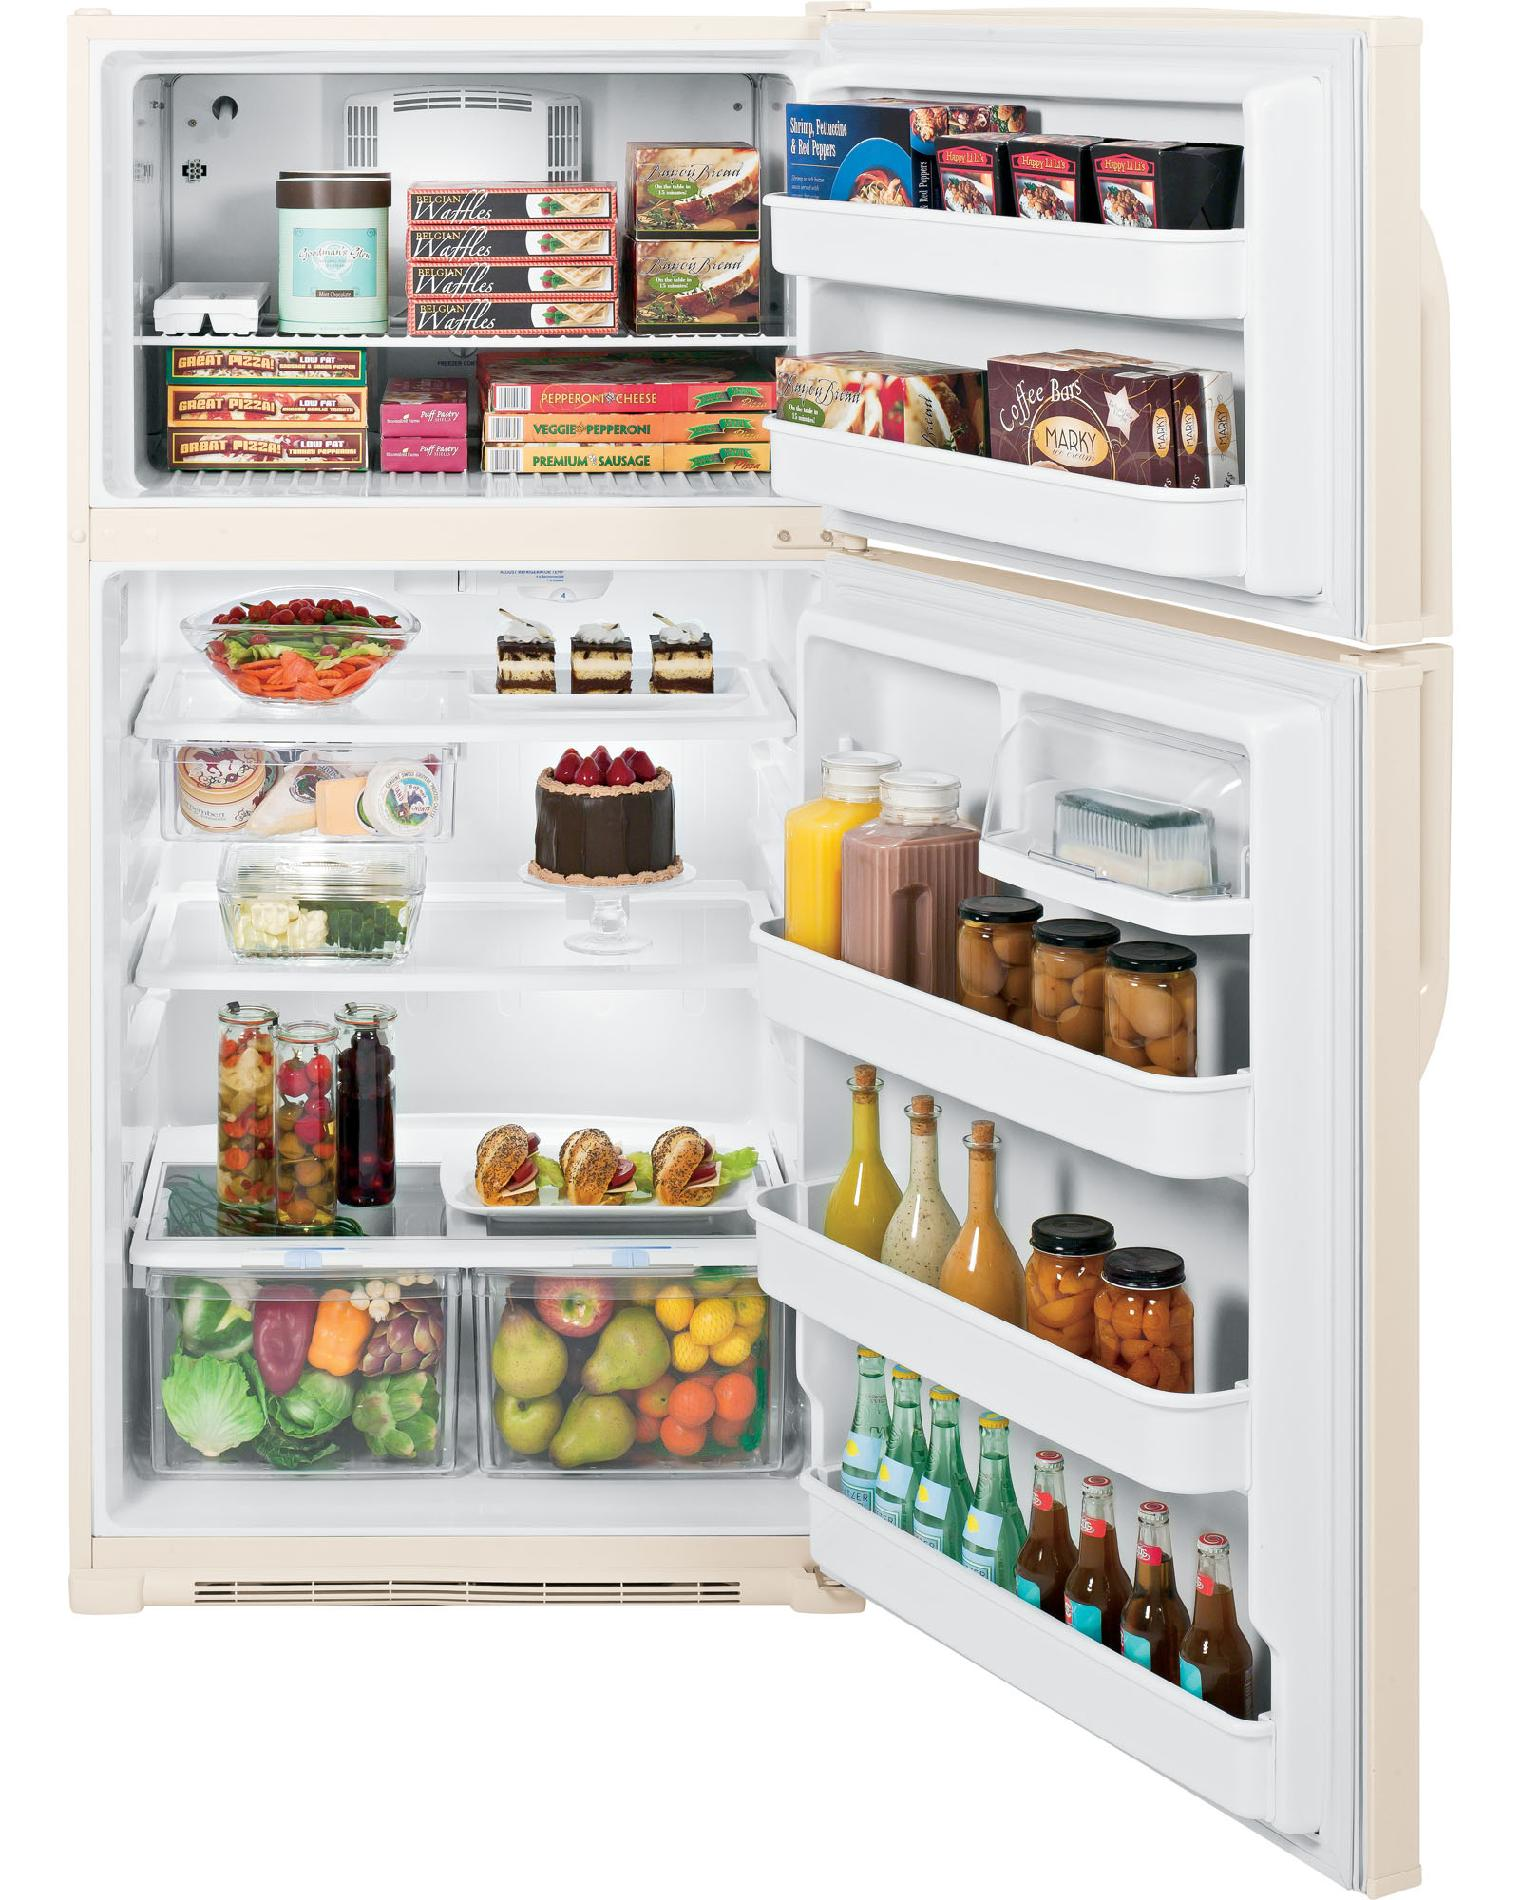 GE 21.0 cu. ft. Top-Freezer Refrigerator - Bisque